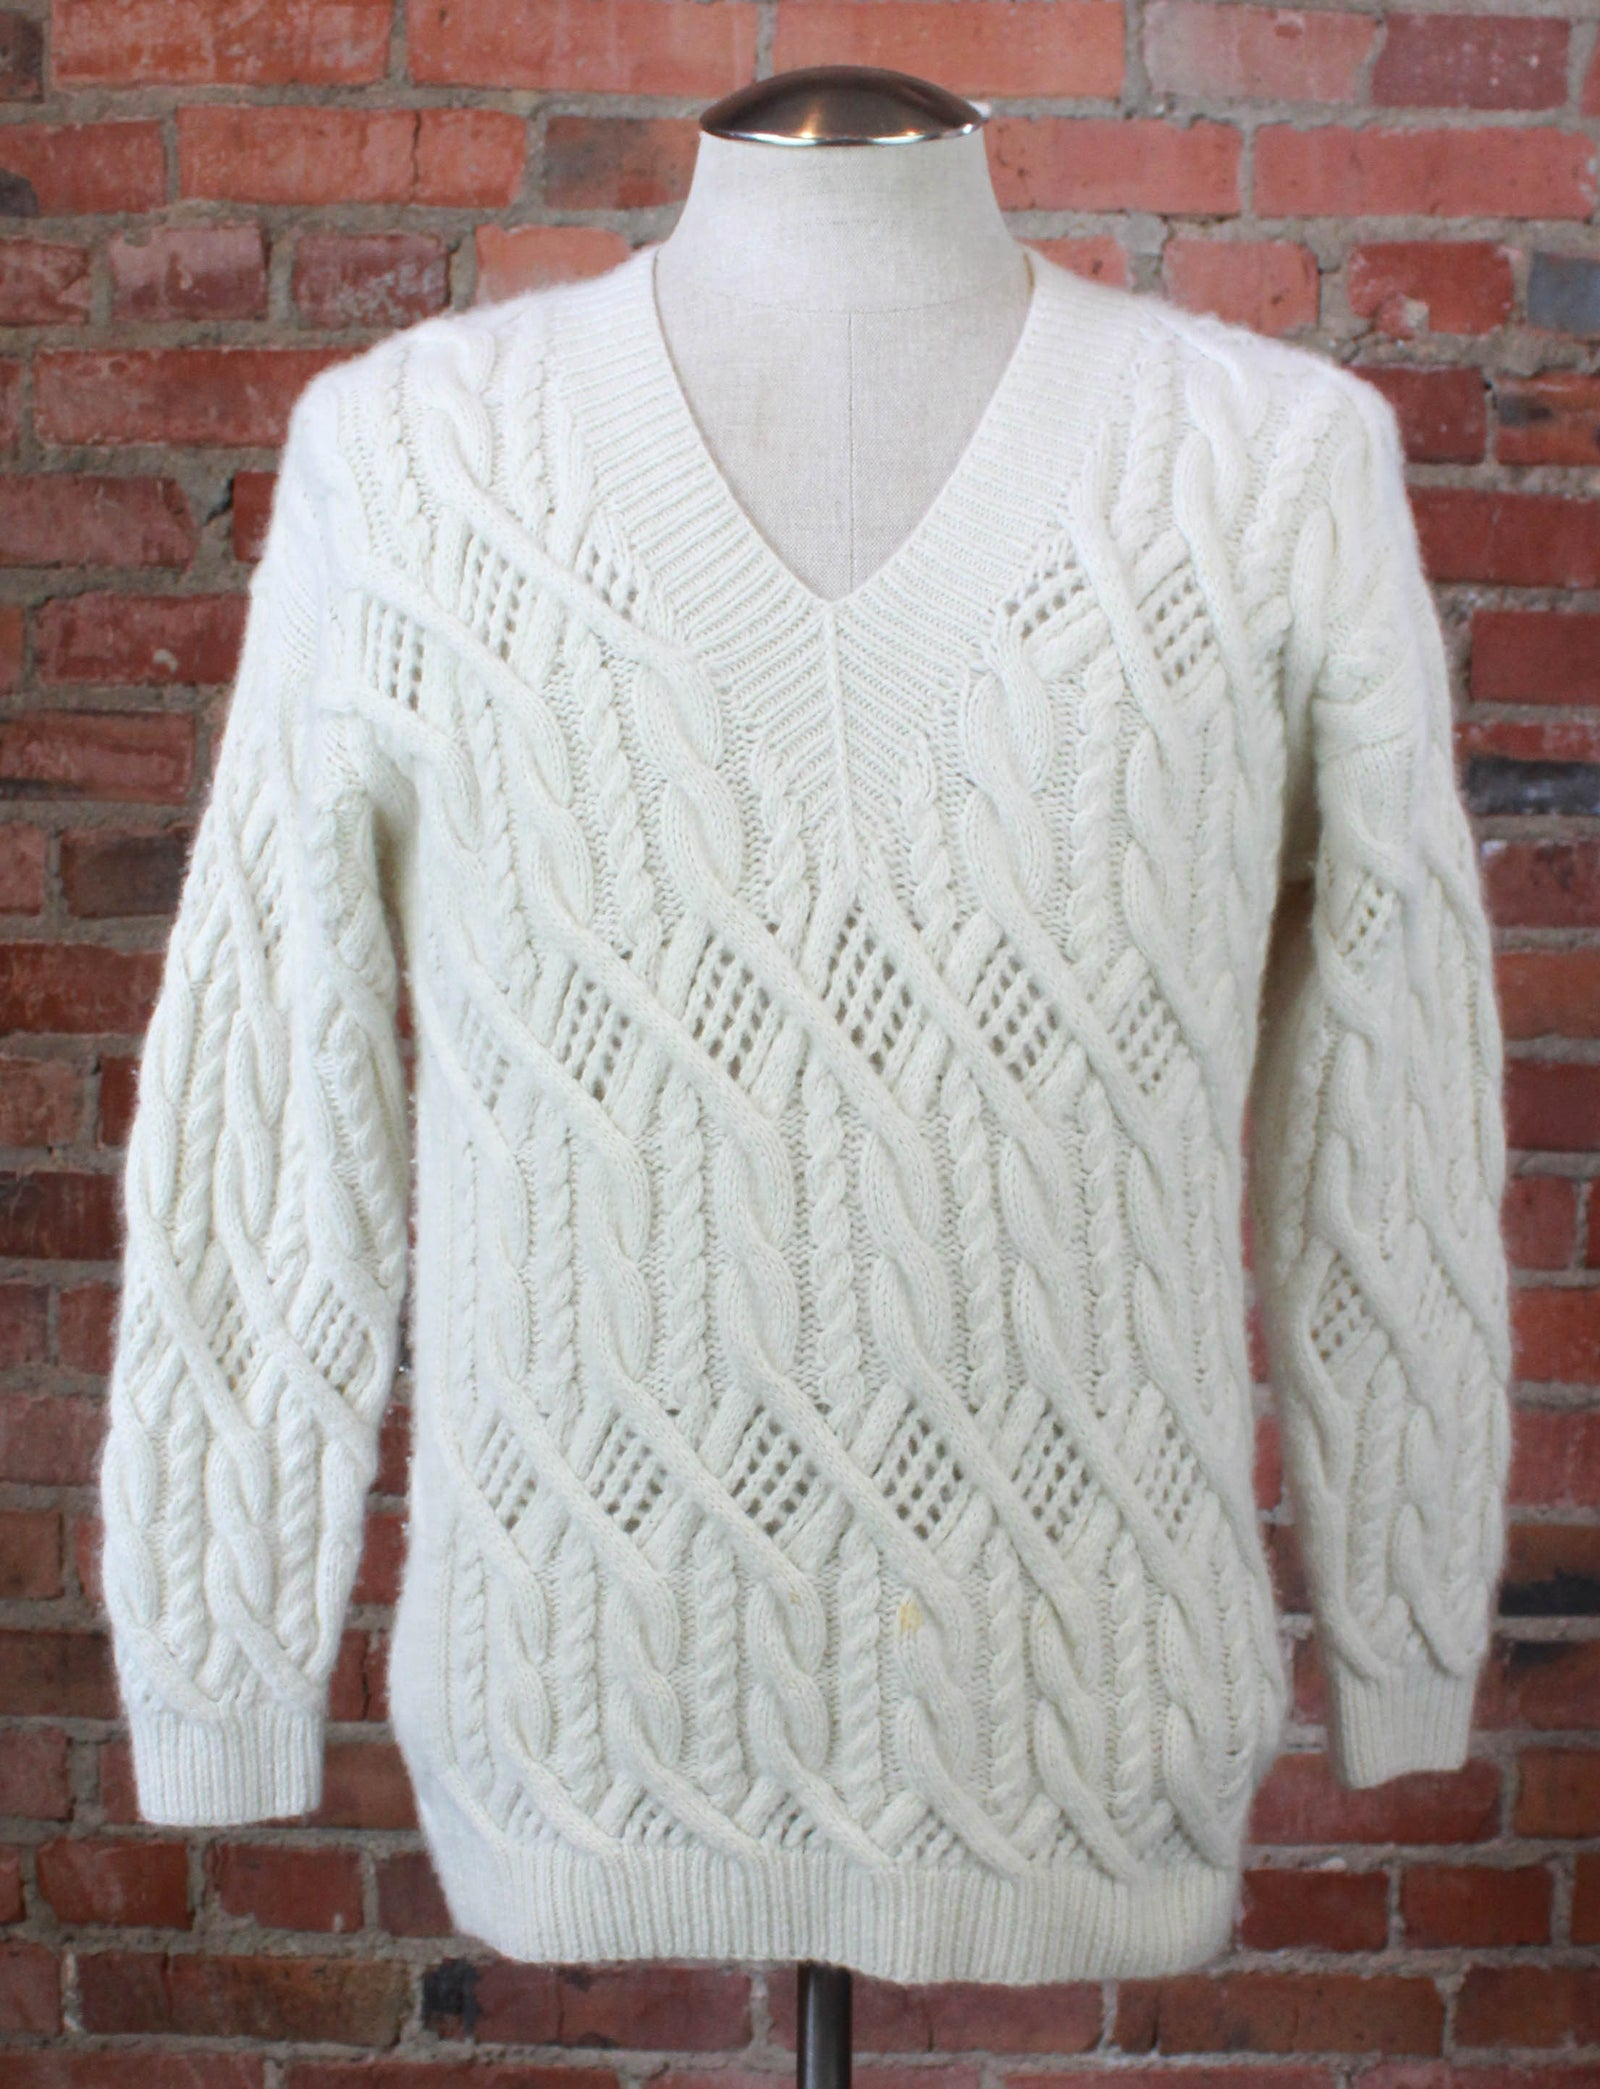 Vintage 80's/90's Neiman Marcus Cashmere Sweater Knit V Neck Pullover White Unisex Small/Medium